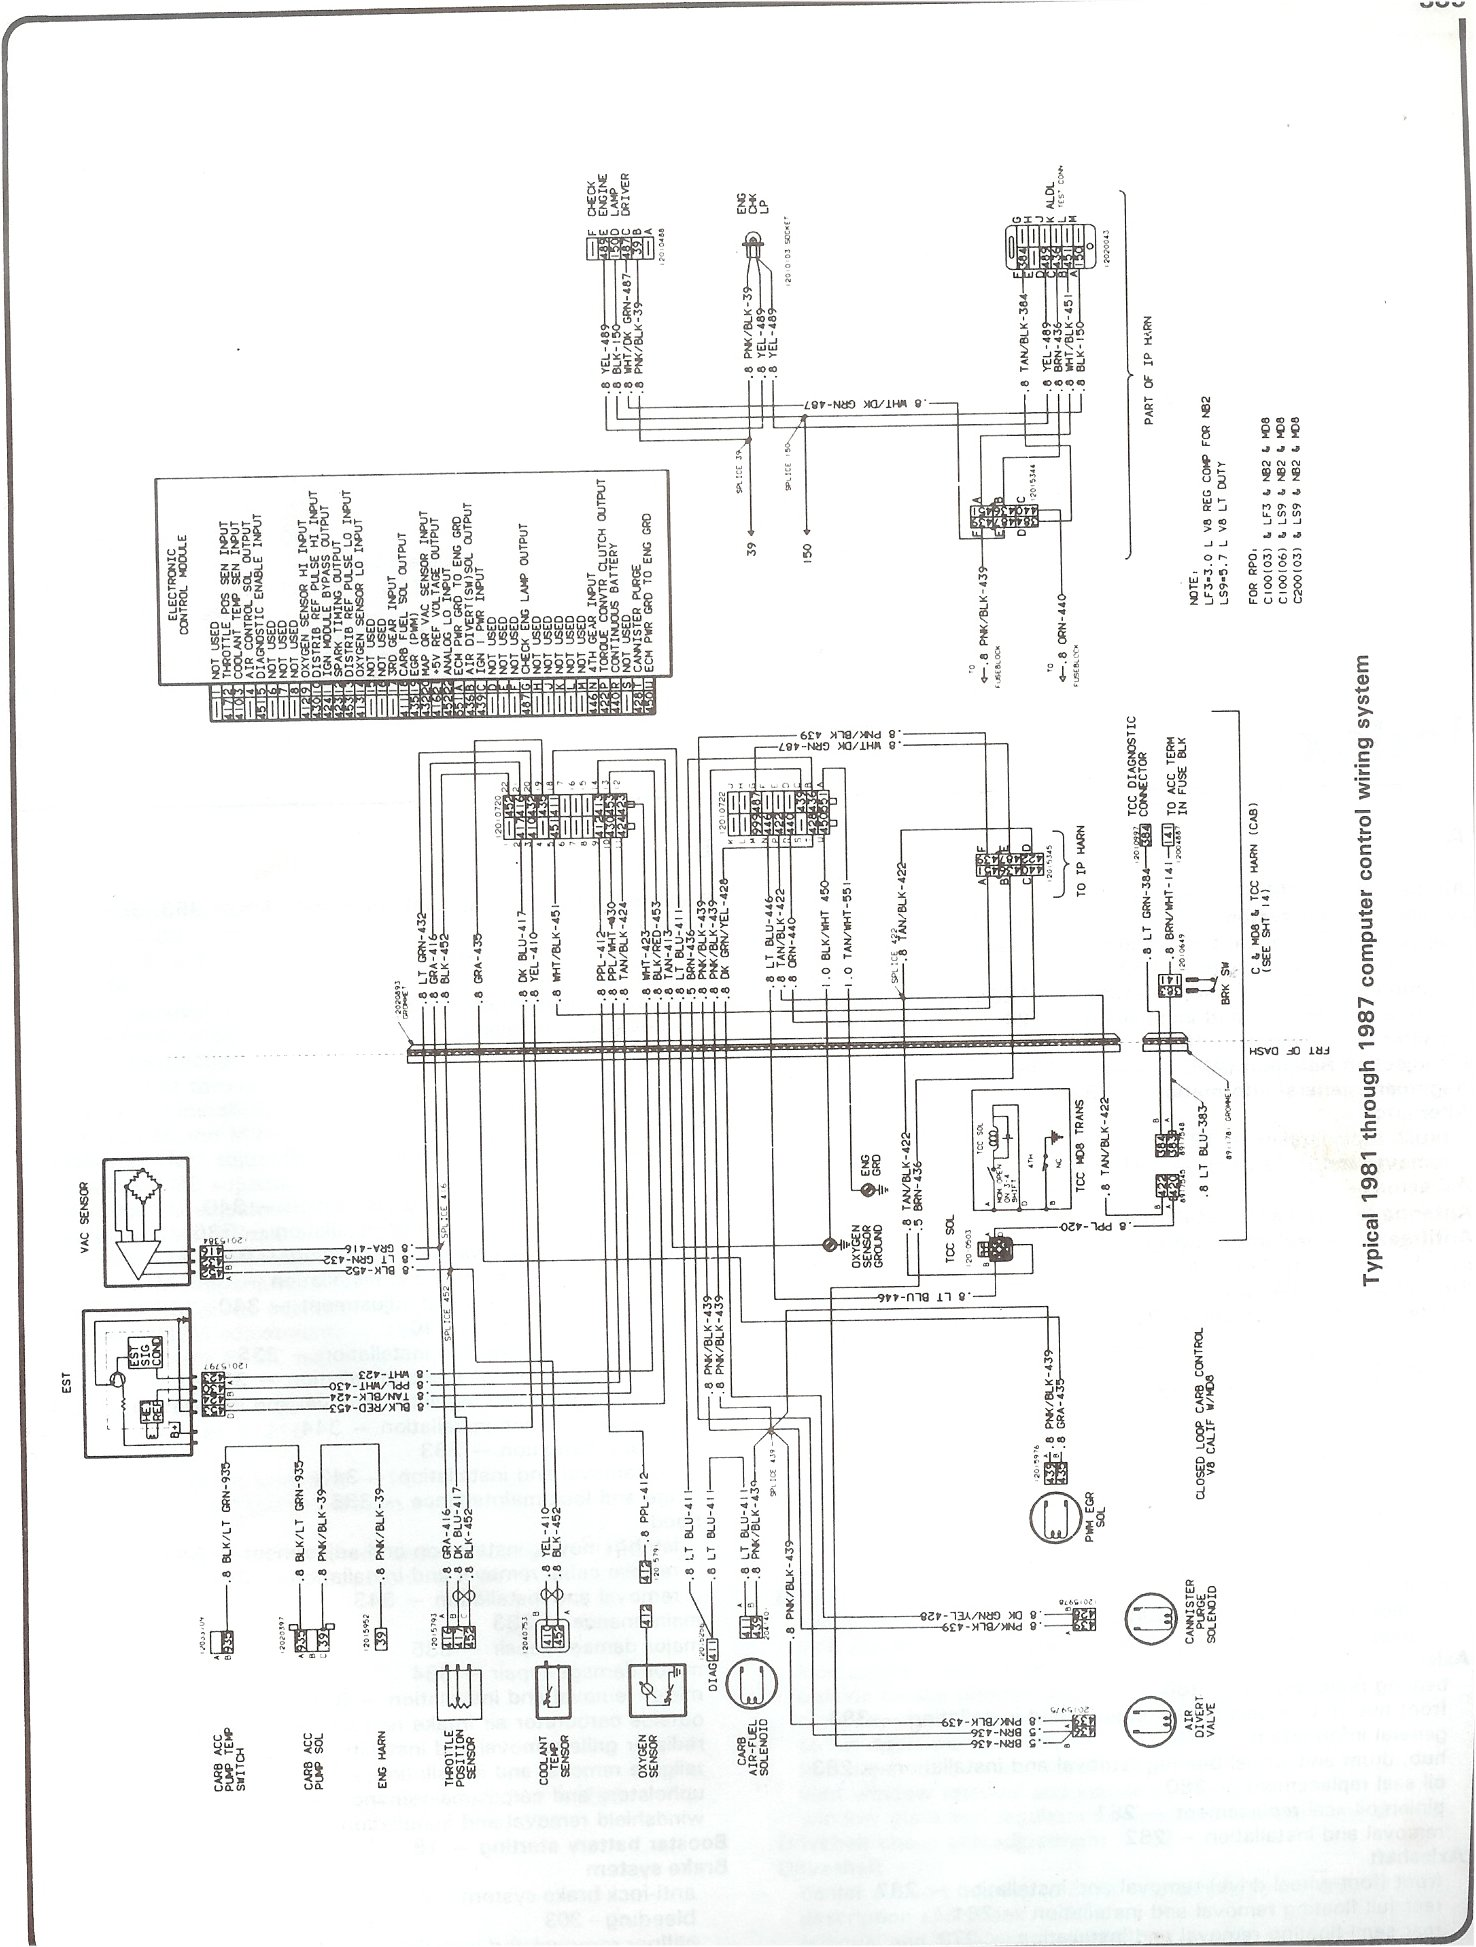 1975 chevy wiring diagram new era of wiring diagram \u2022 box chevy on 24s complete 73 87 wiring diagrams rh forum 73 87chevytrucks com 1975 chevy caprice wiring diagram 1975 chevy pickup wiring diagram